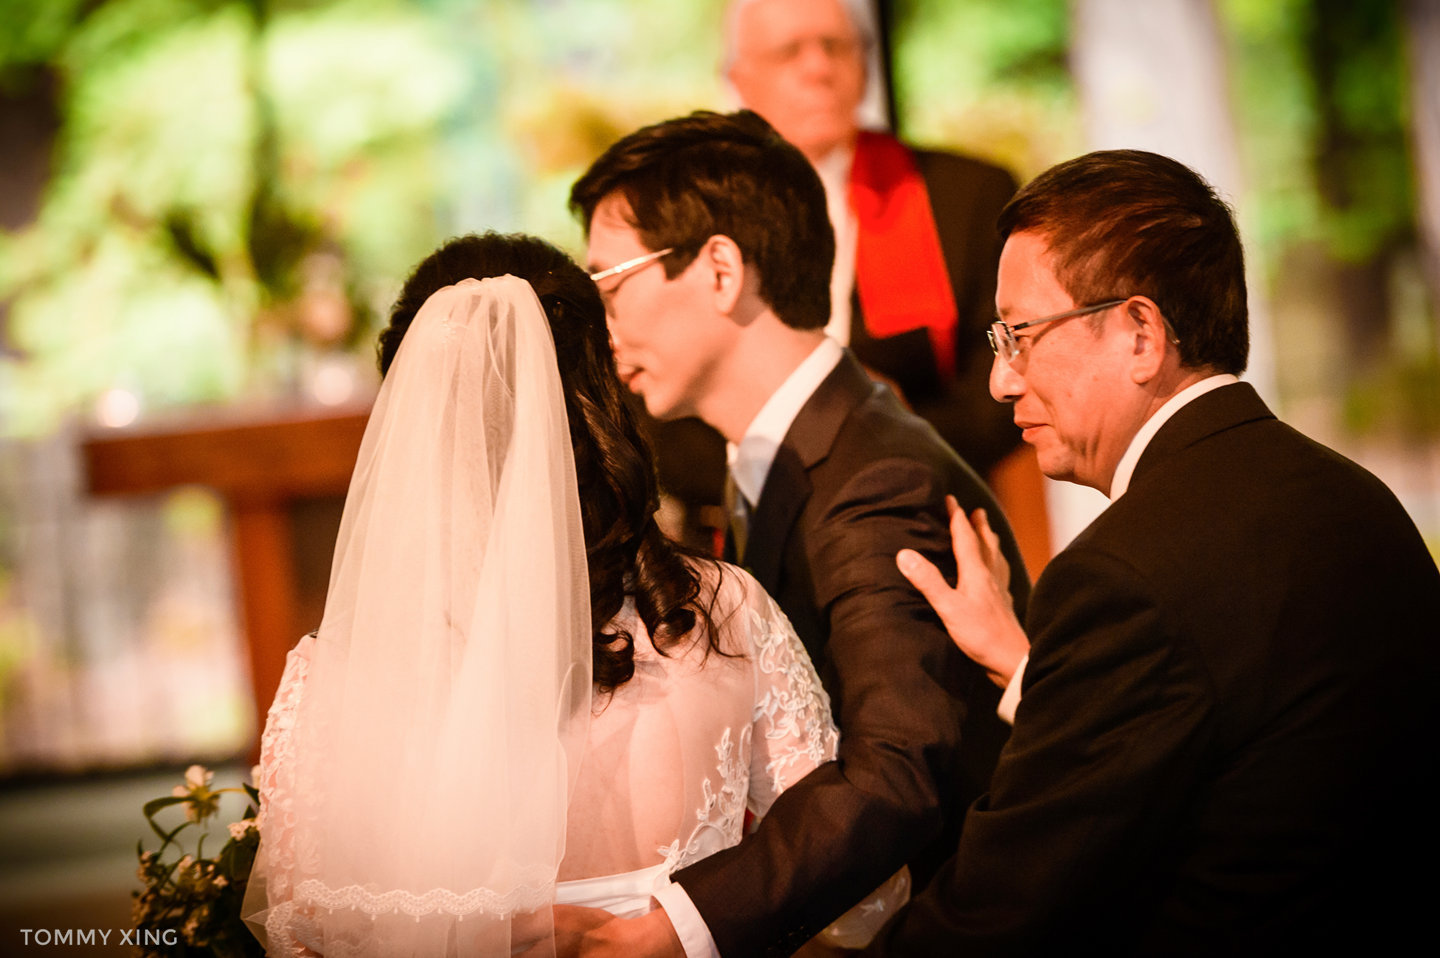 San Francisco Wedding Photography Valley Presbyterian Church WEDDING Tommy Xing Photography 洛杉矶旧金山婚礼婚纱照摄影师072.jpg